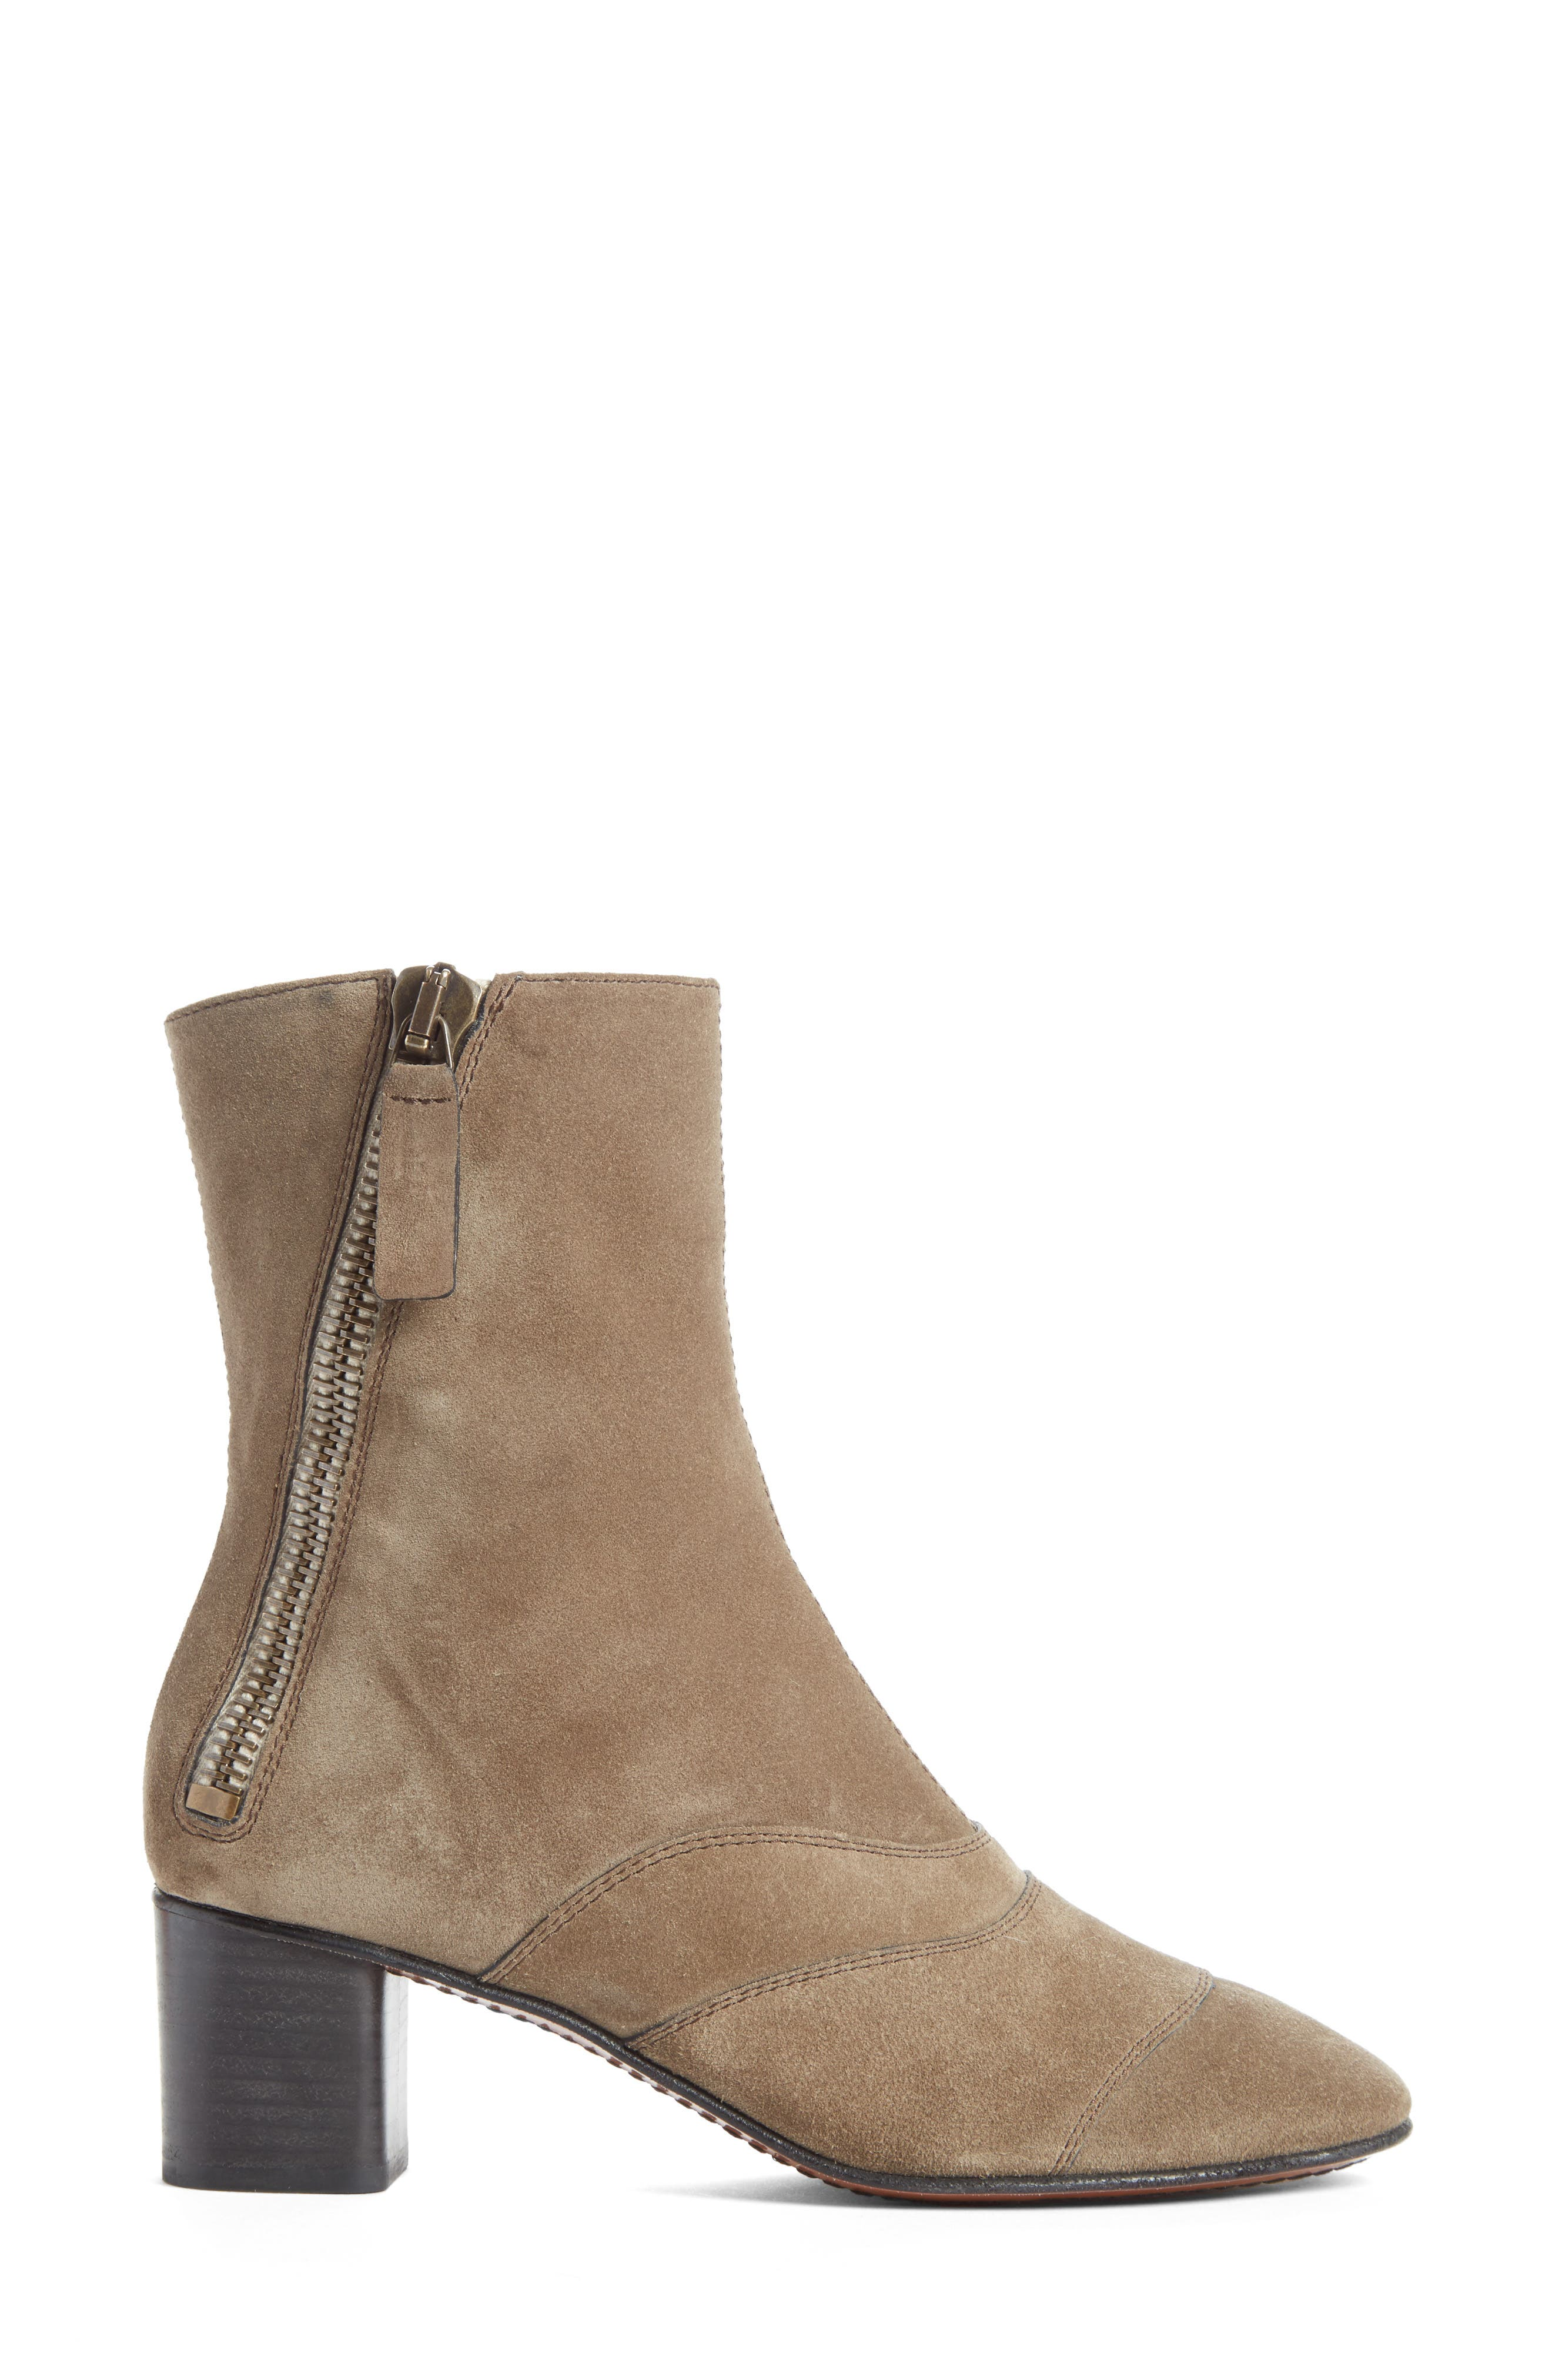 Lexie Block Heel Boot,                             Alternate thumbnail 4, color,                             021